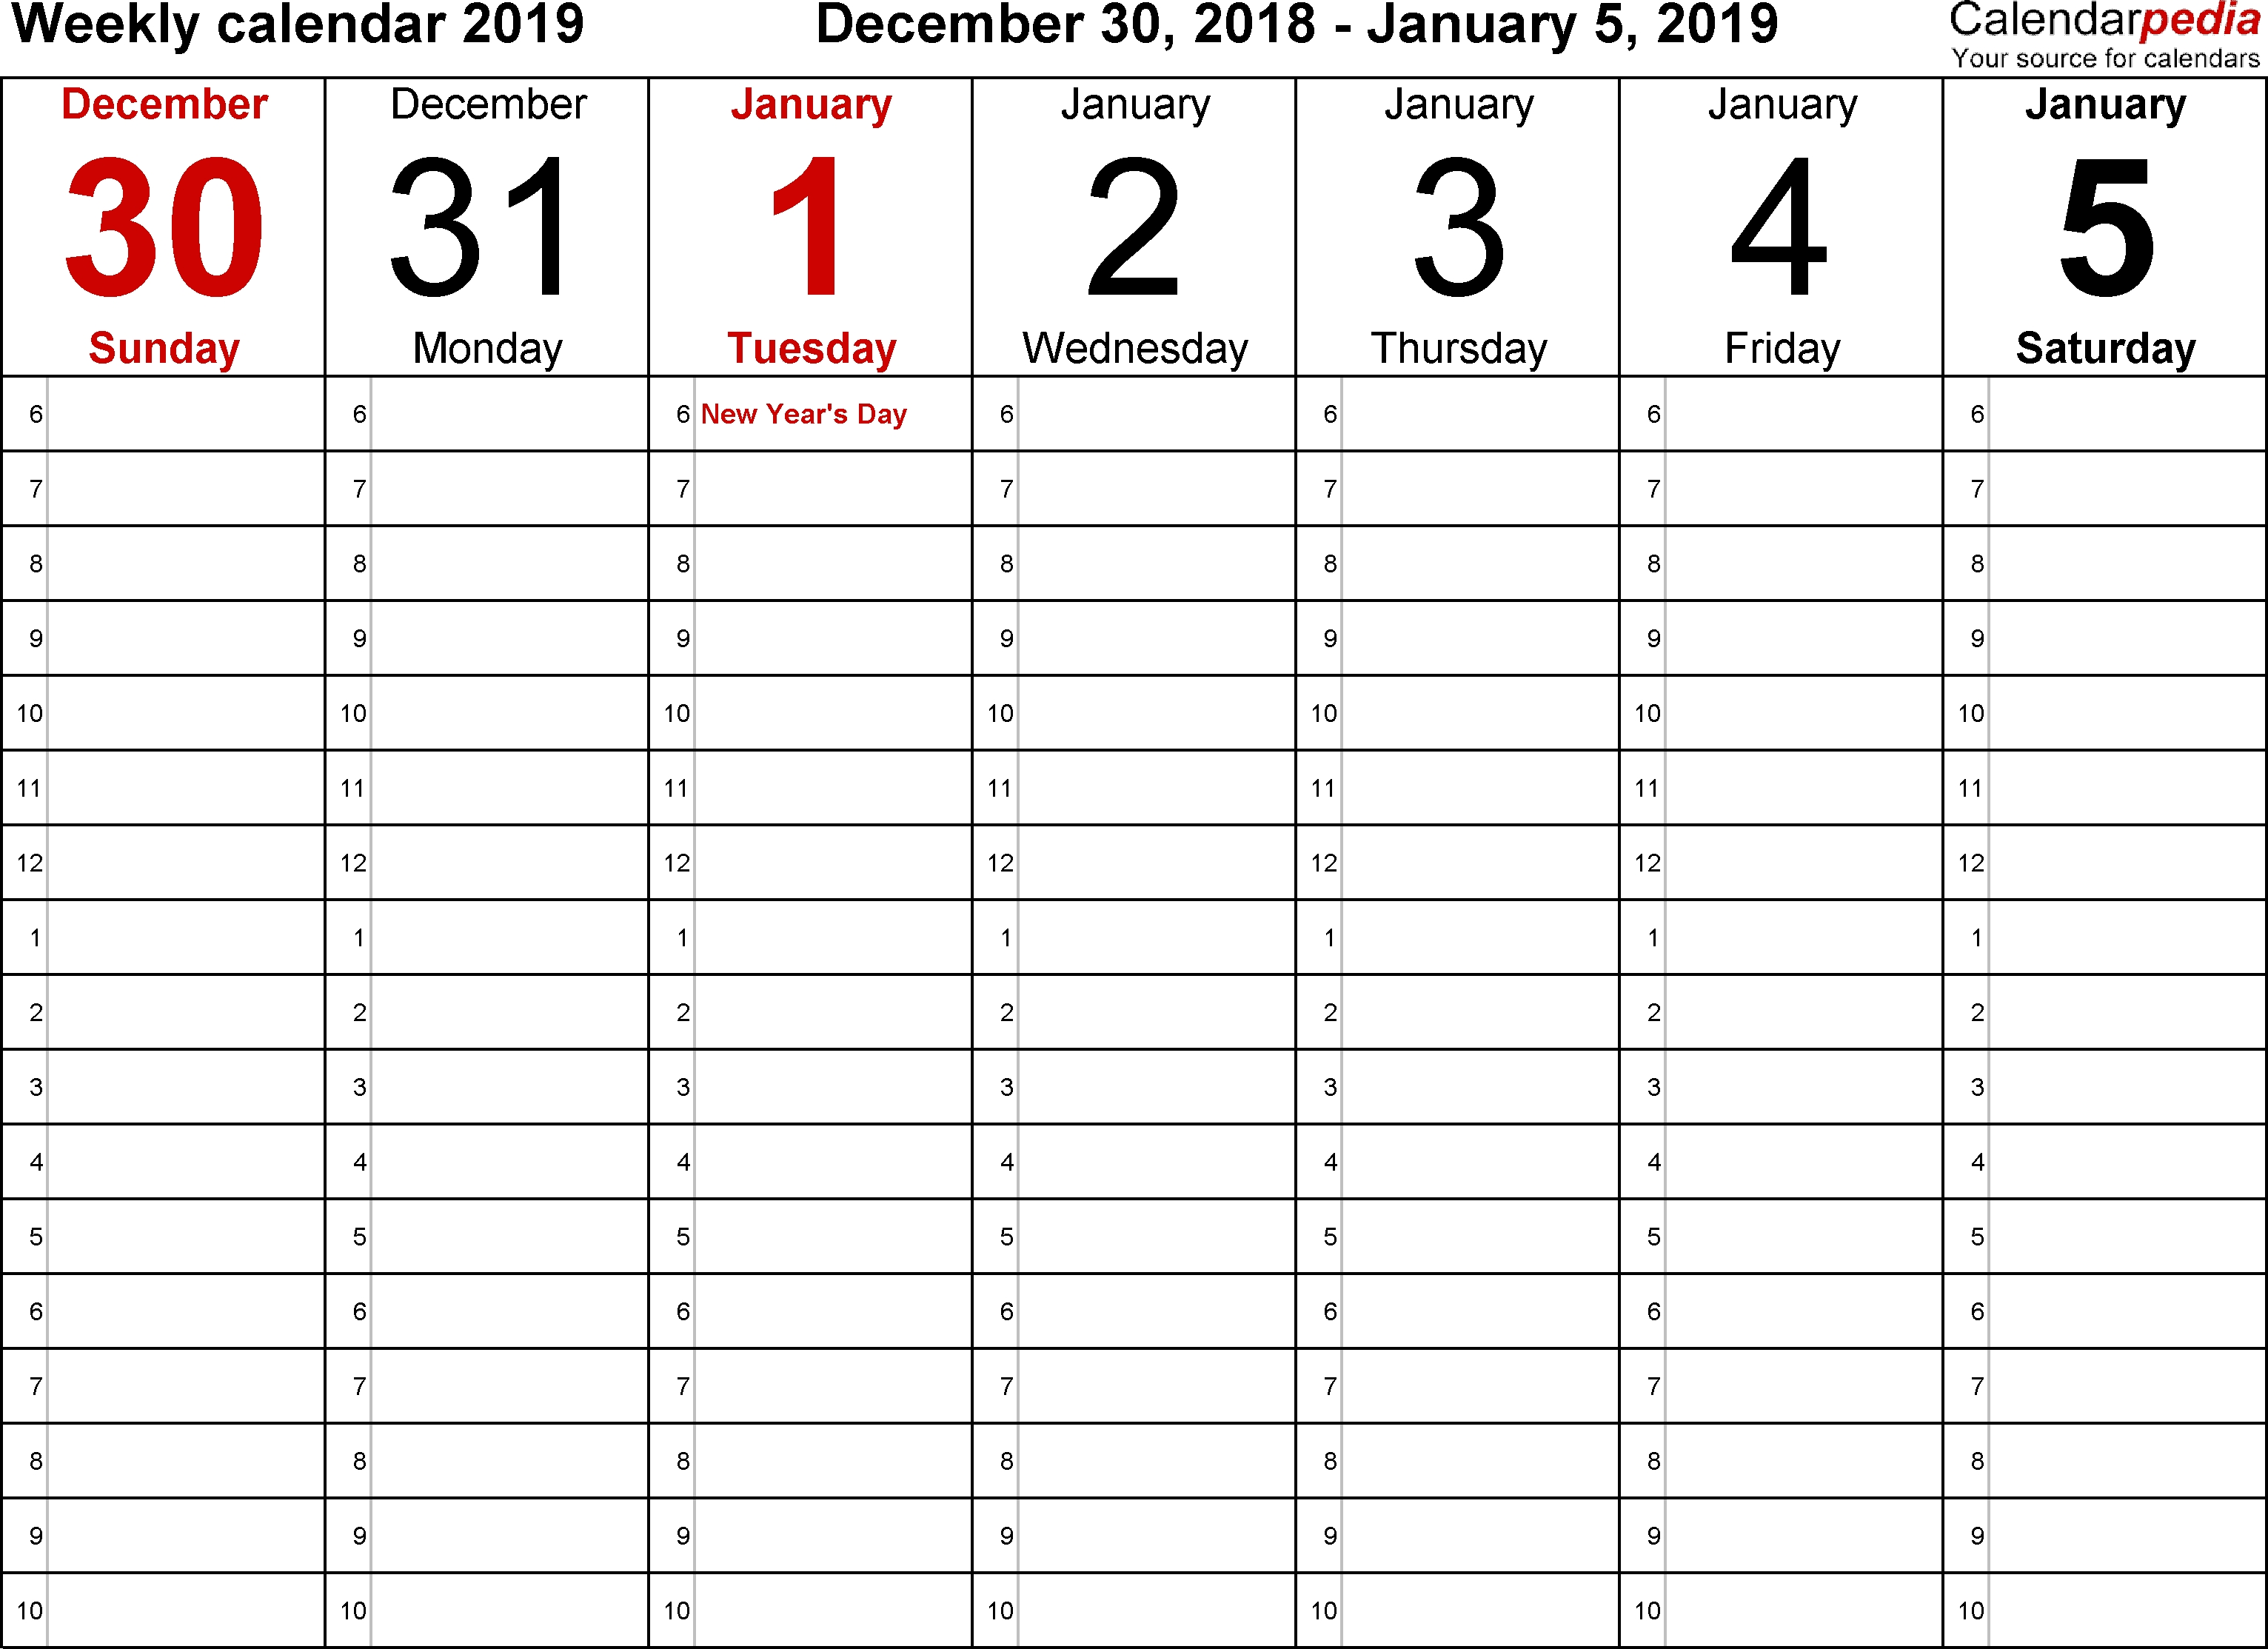 Weekly Calendar 2019 For Word - 12 Free Printable Templates for 1 Week Vacation Calendar Printable